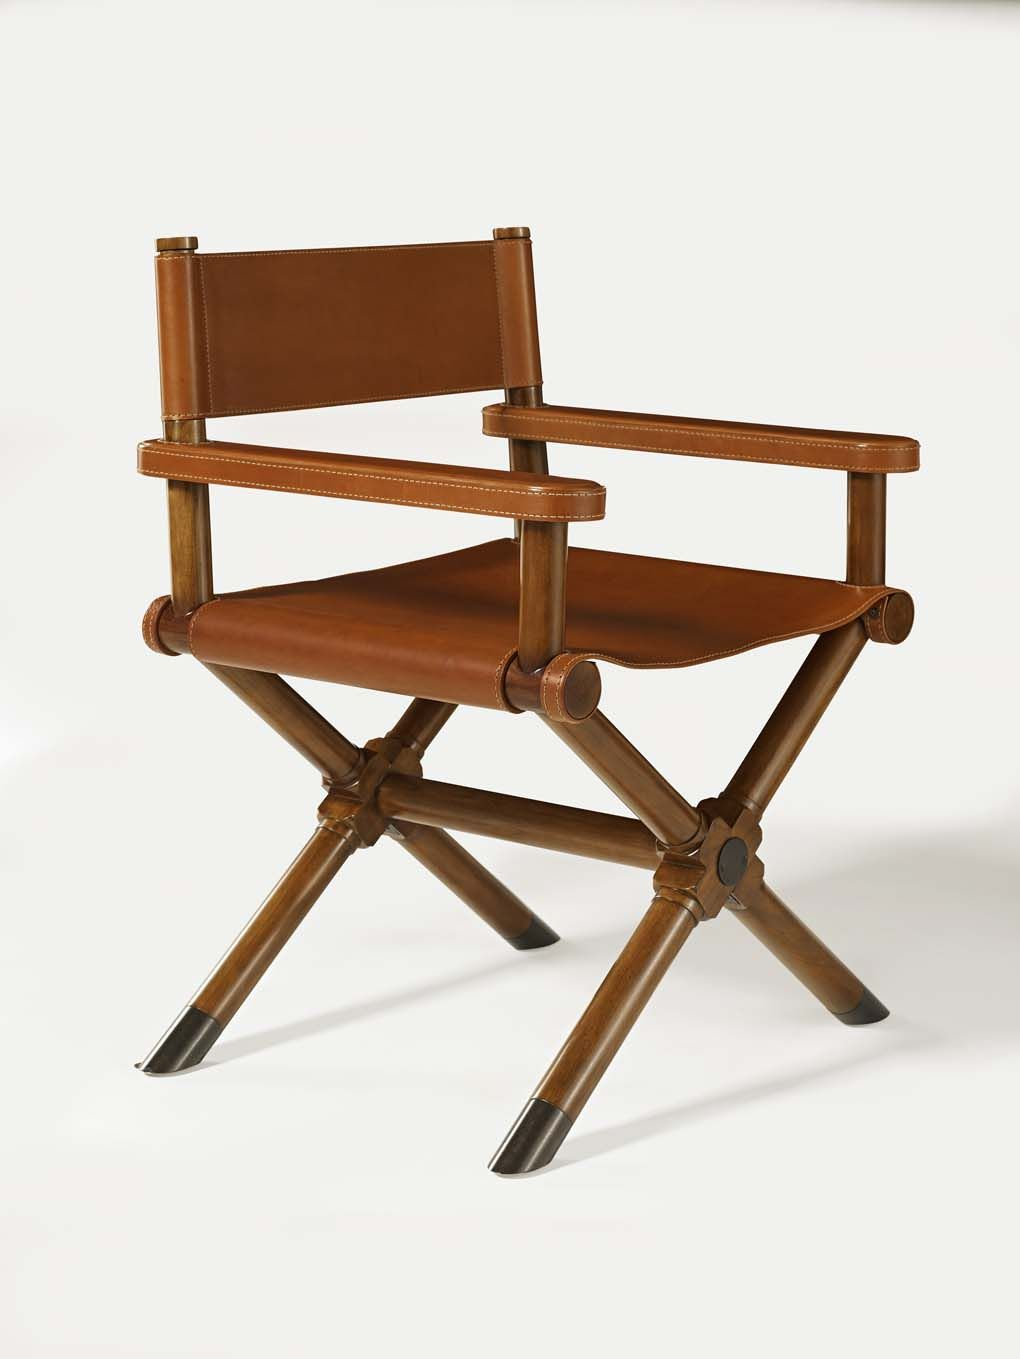 Enjoyable Ralph Lauren Home Directors Chair In Saddle Leather And A Ibusinesslaw Wood Chair Design Ideas Ibusinesslaworg